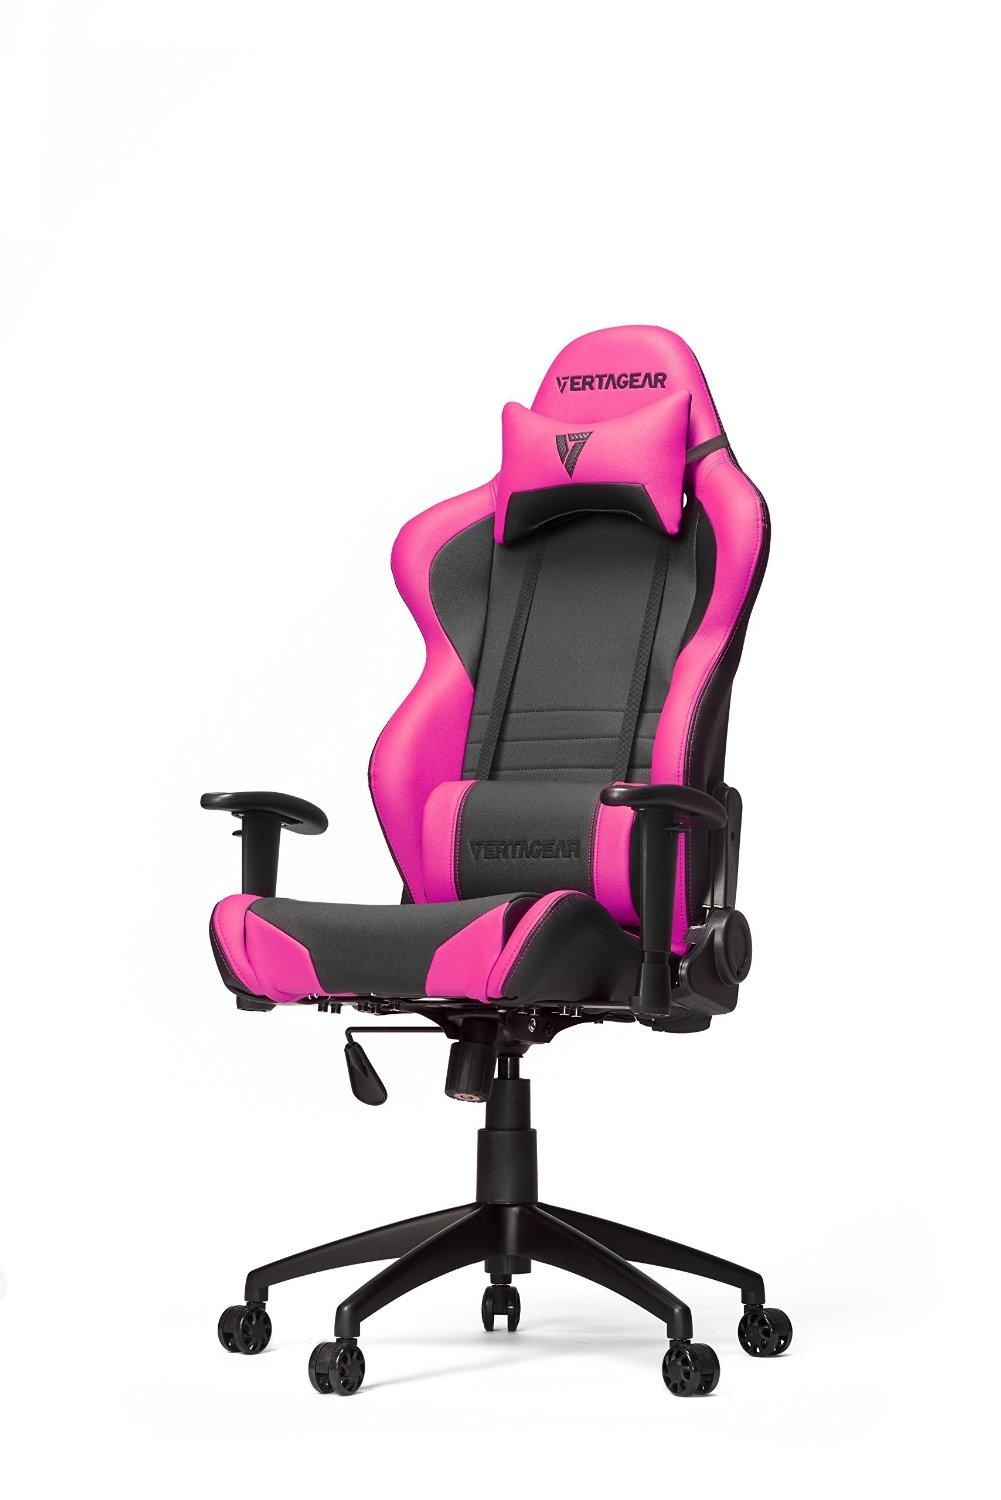 Best Gaming Chair For League Of Legends [Lol] – Buying Guide Throughout Gaming Sofa Chairs (Image 3 of 20)